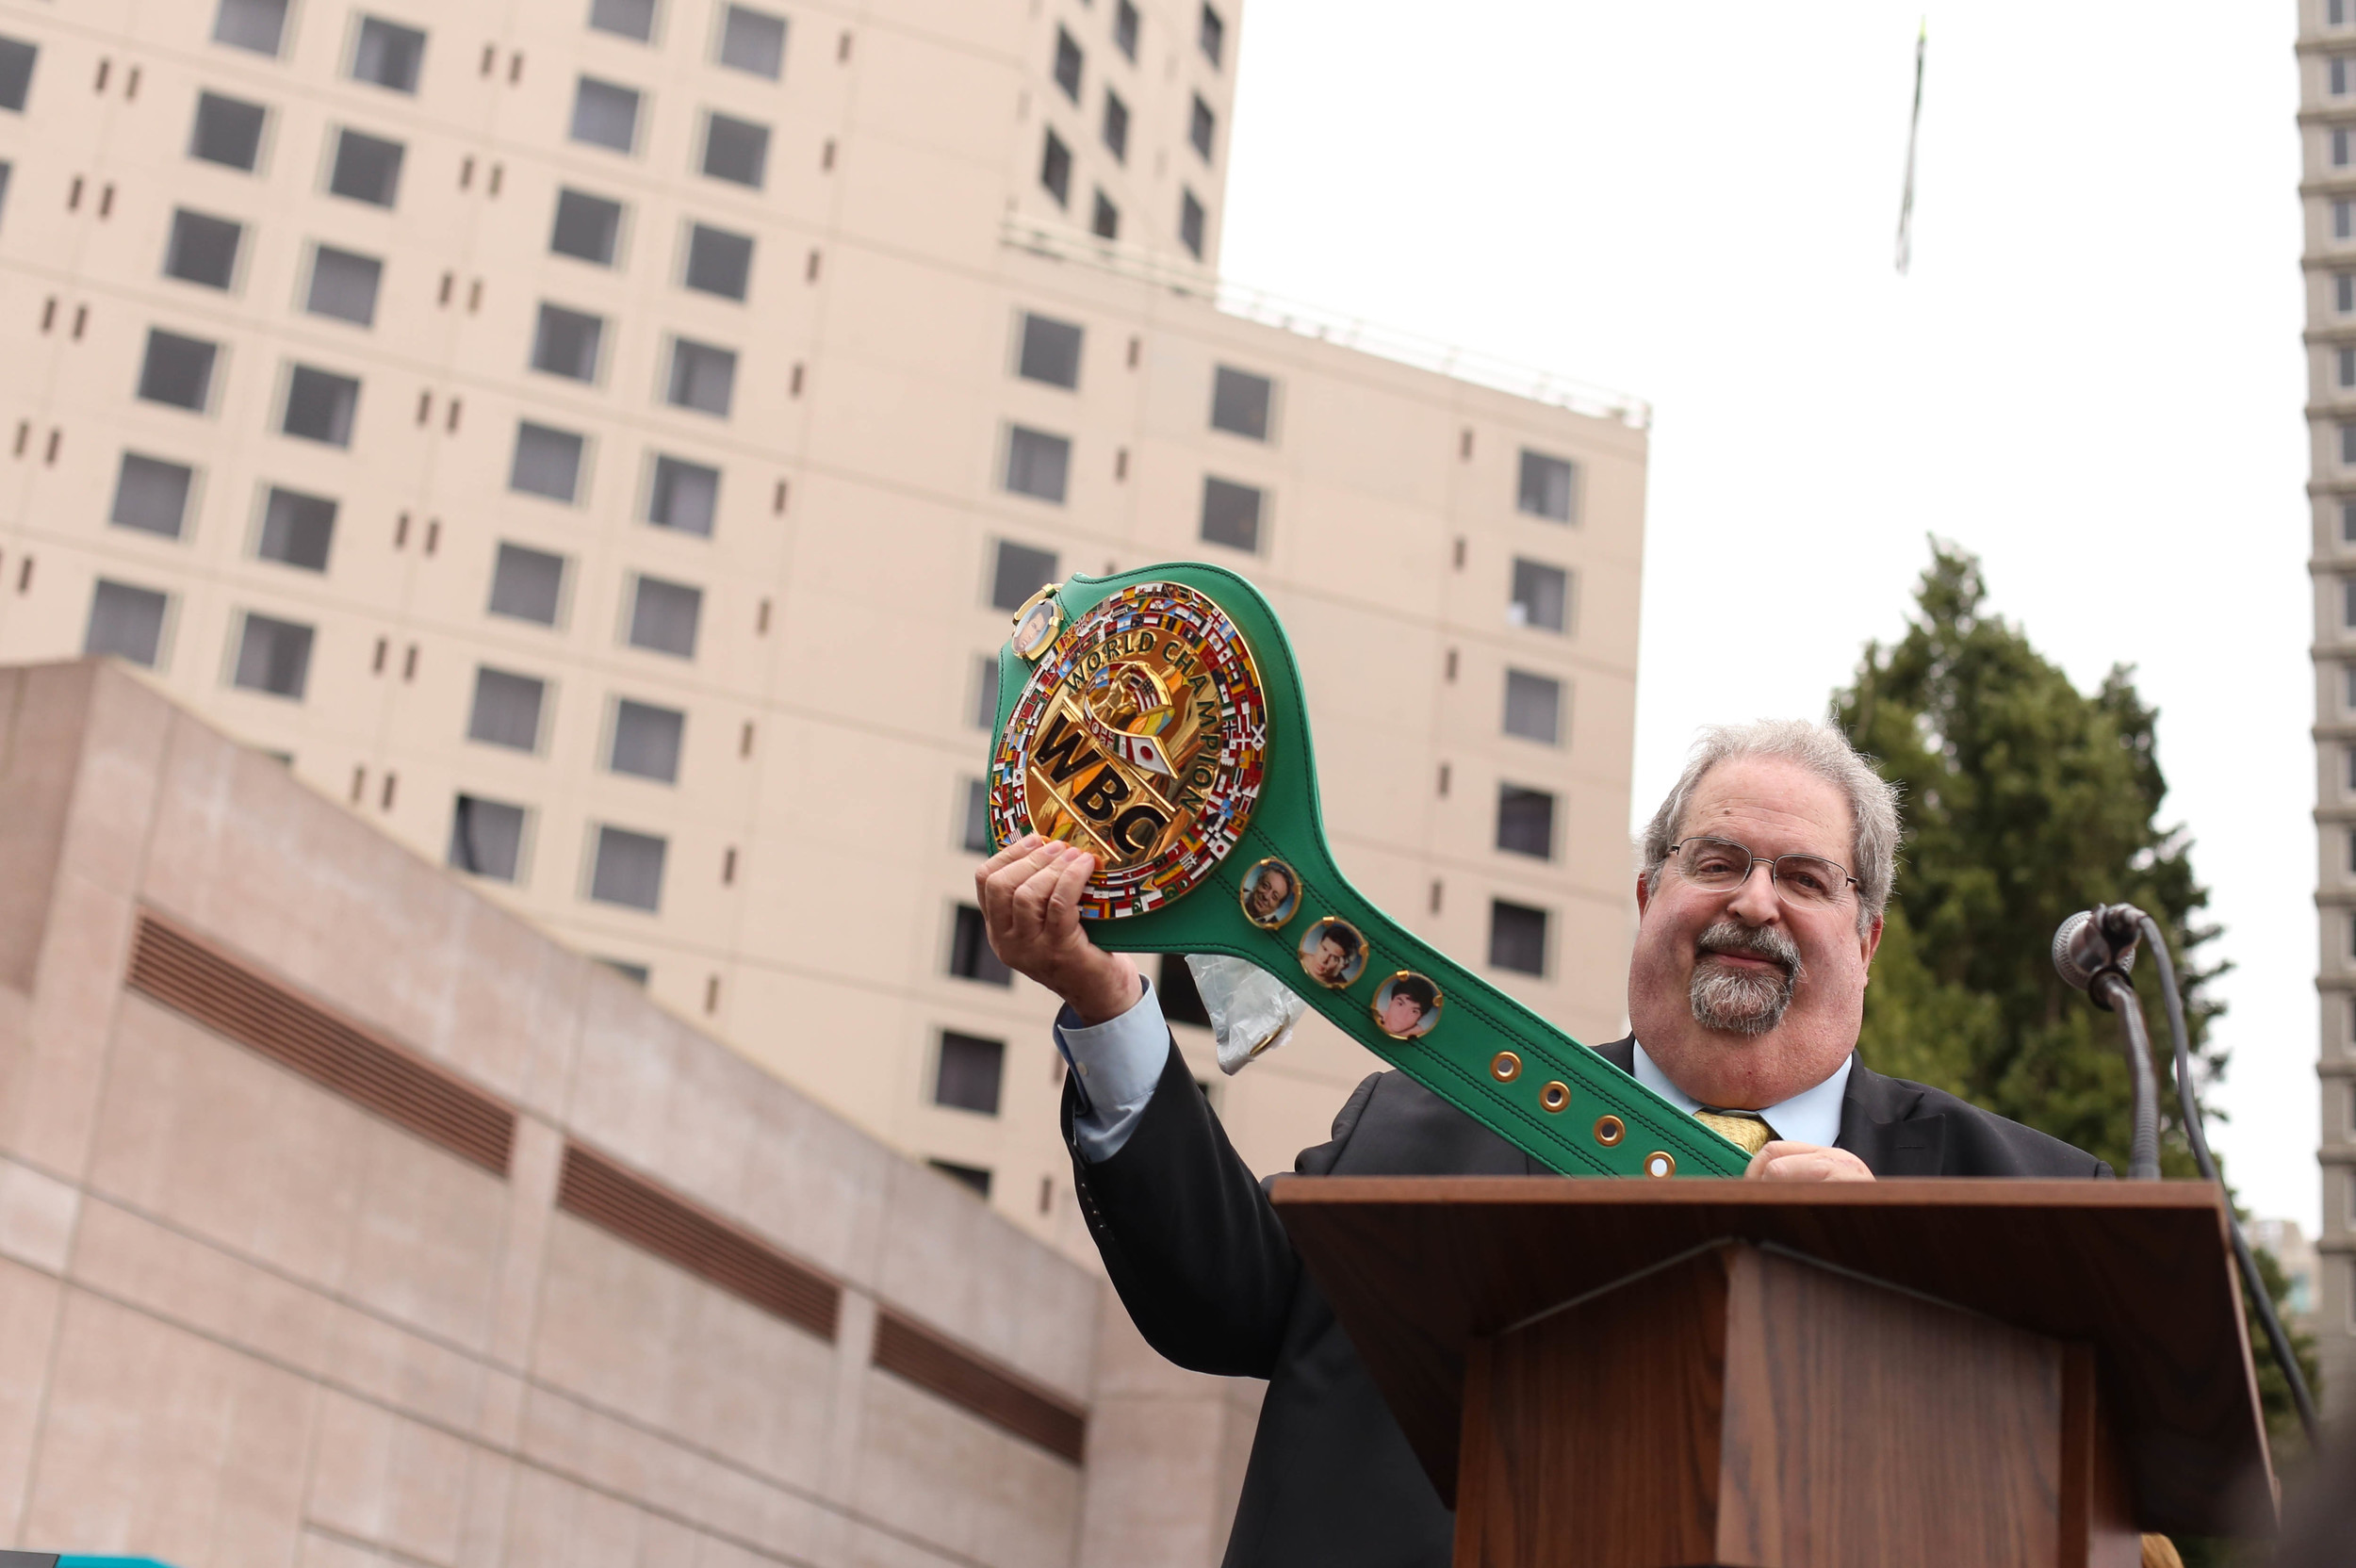 Andrew Kluger, The Mexican Museum Board Chairman, with the WBC title belt at the dedication ceremony for The Mexican Museum in San Francisco, California. Tuesday, July 19, 2016. Jessica Webb